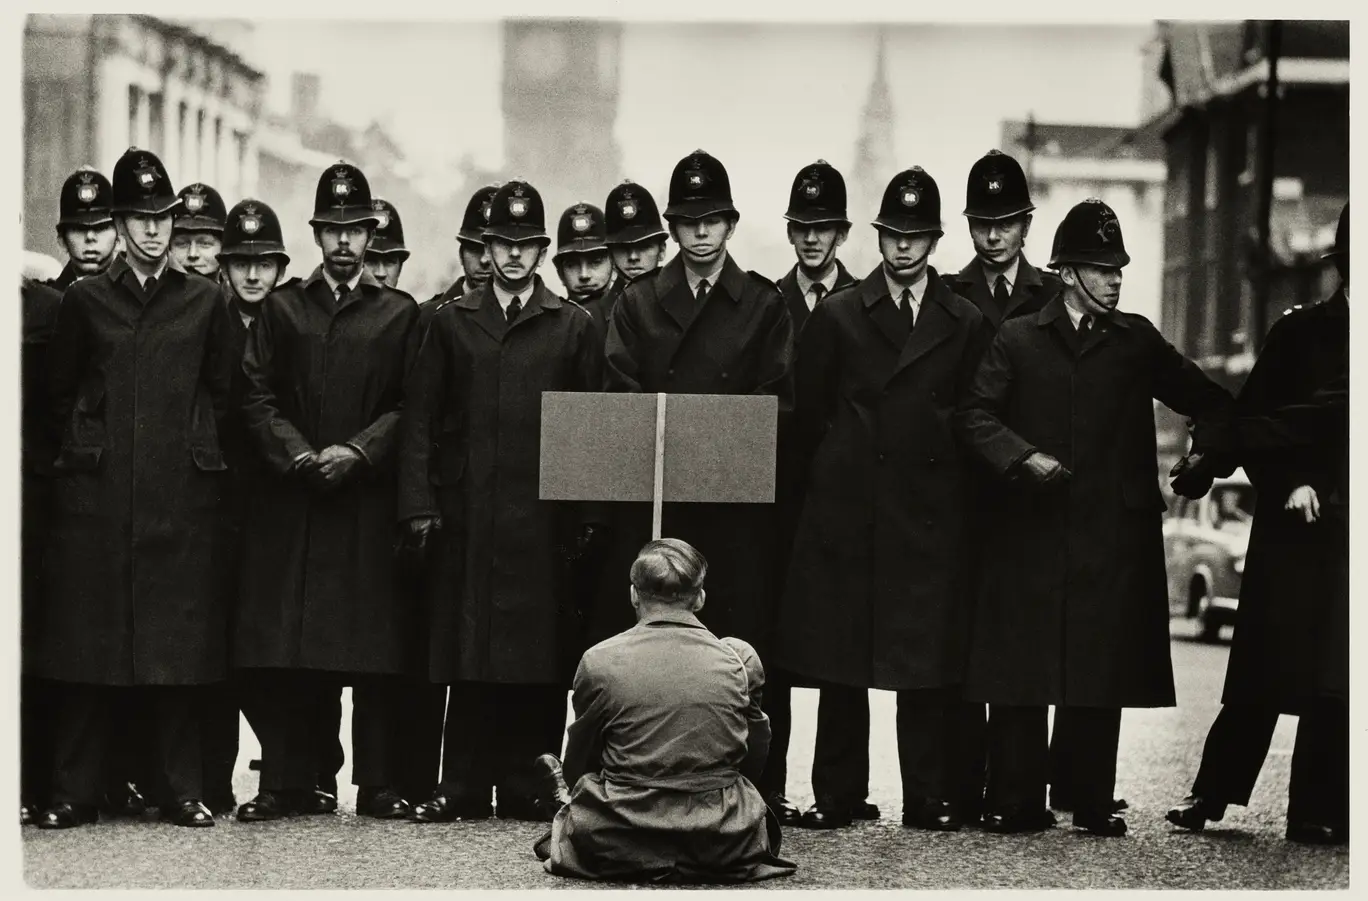 A black and white photo of a single protestor sat in front of a line of police, by famous photographer Don McCullin